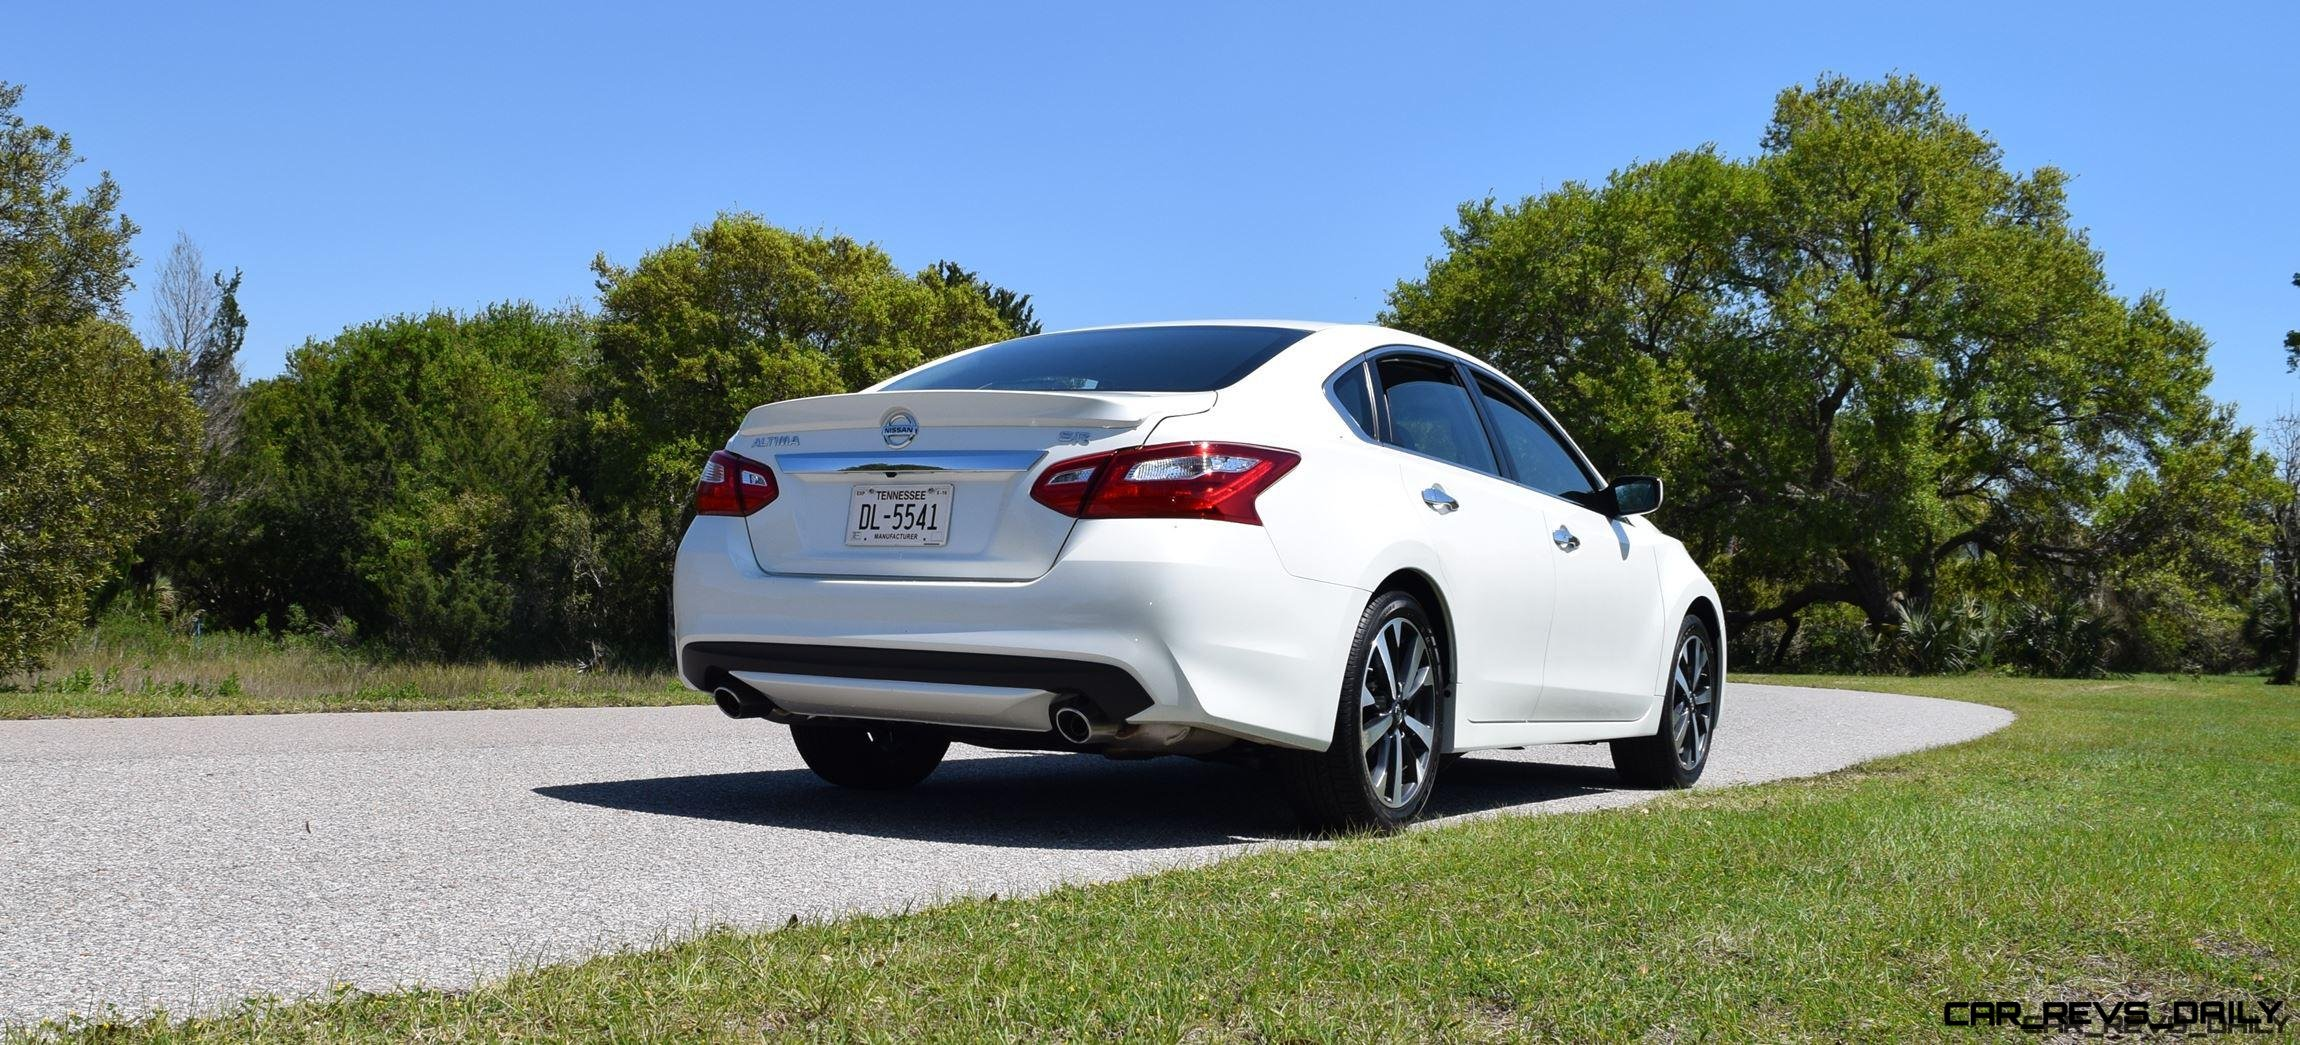 2016 Nissan Altima 2 5 Sr >> 2016 Nissan Altima 2 5 Sr Hd Road Test Review Drive